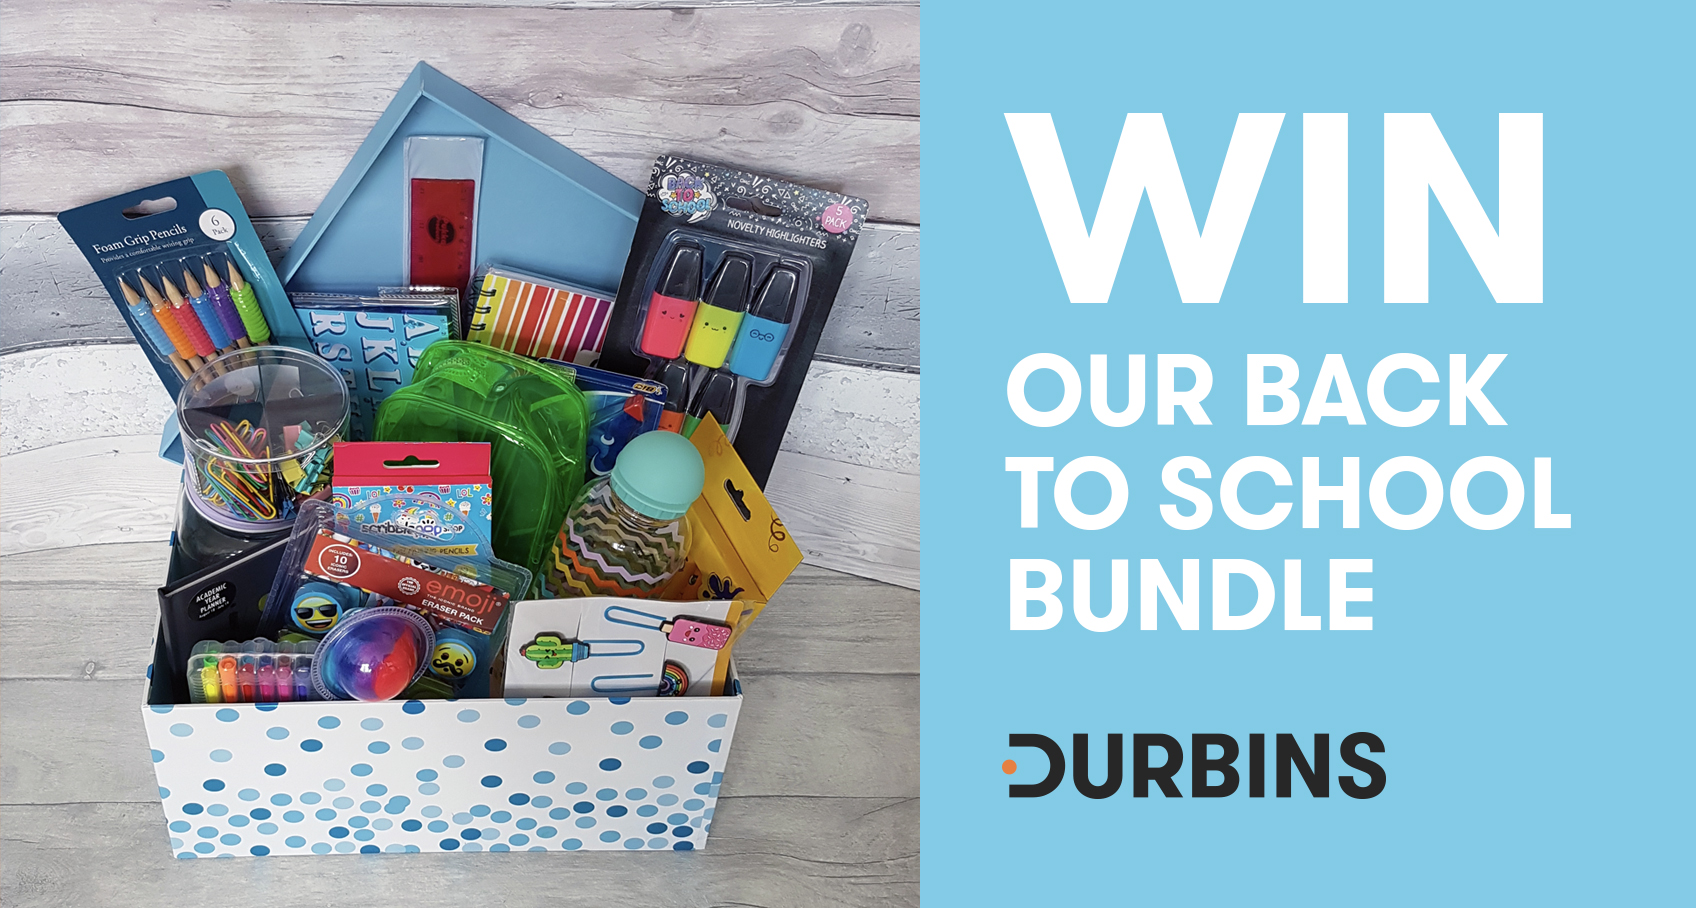 WIN our Back to School Bundle